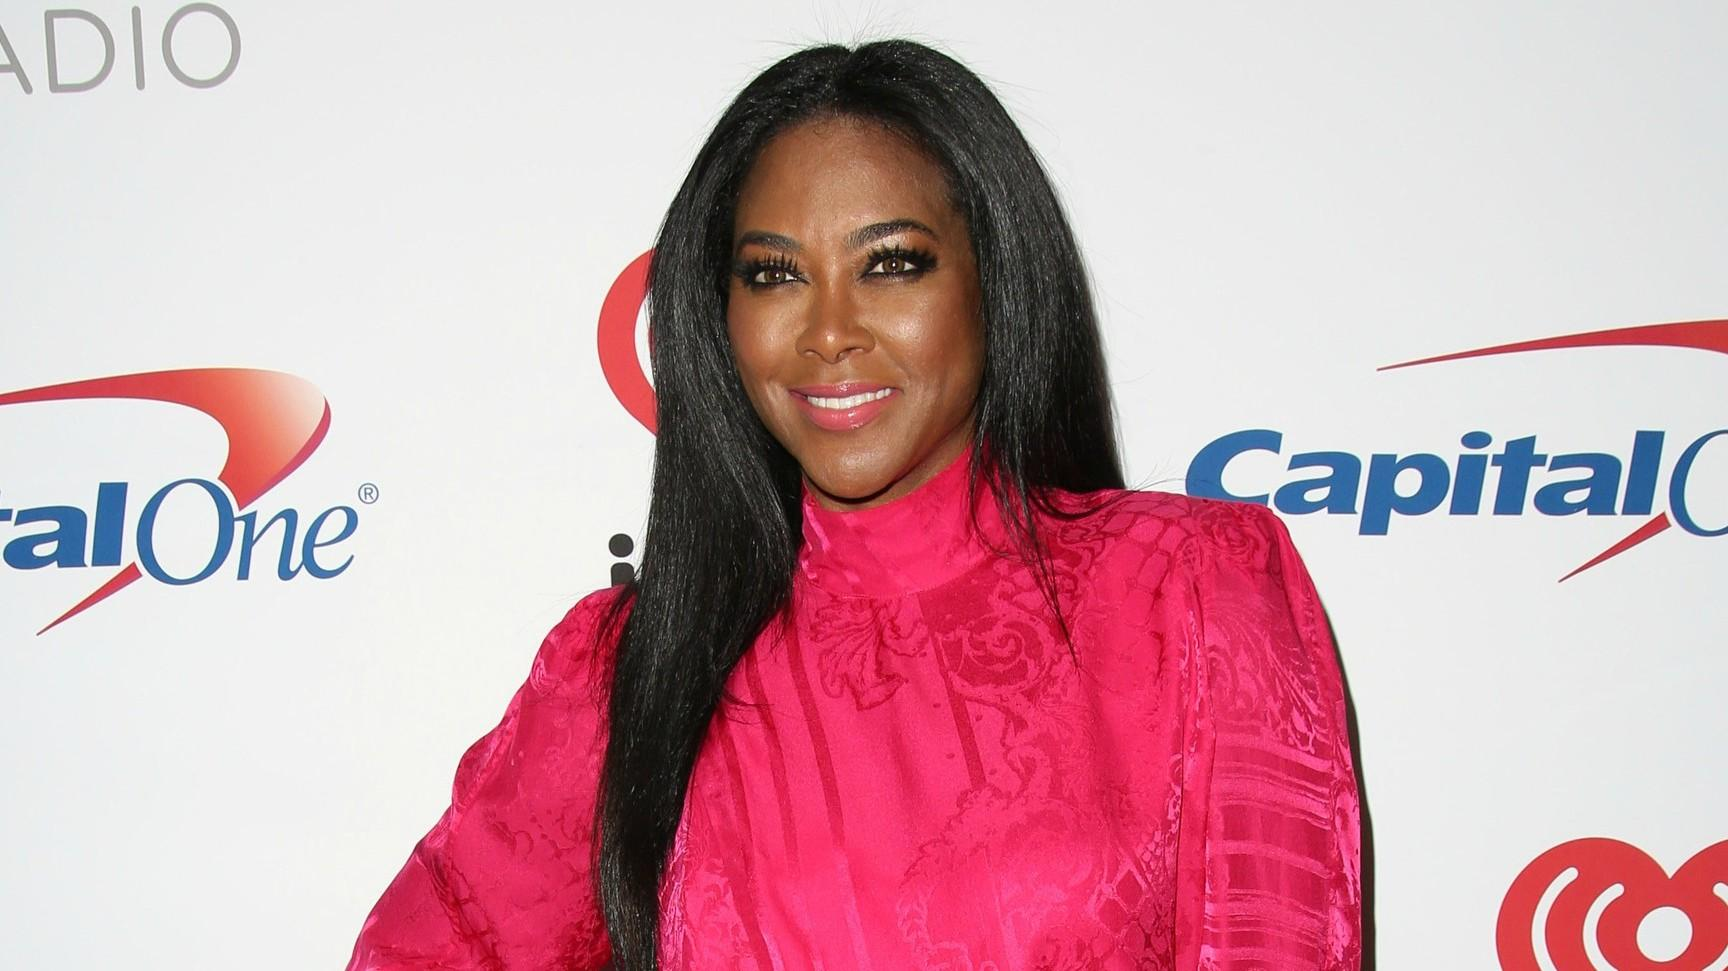 Kenya Moore Shows Off Her Flawless Figure And Fans Say She's Thinner Compared To Her Pre-Pregnancy Body